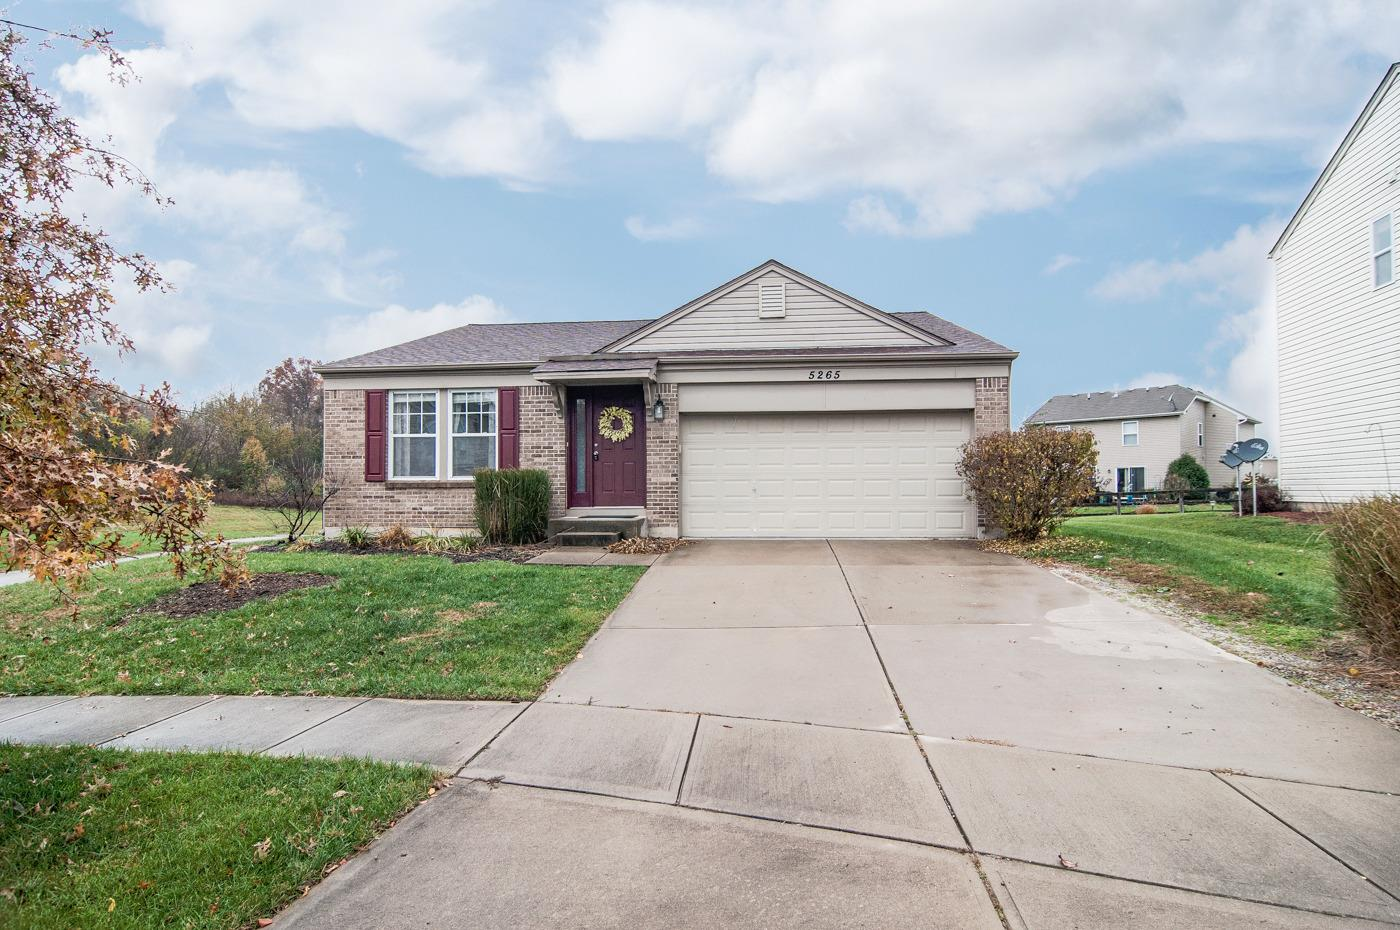 Property for sale at 5265 Crested Owl, Hamilton Twp,  OH 45152